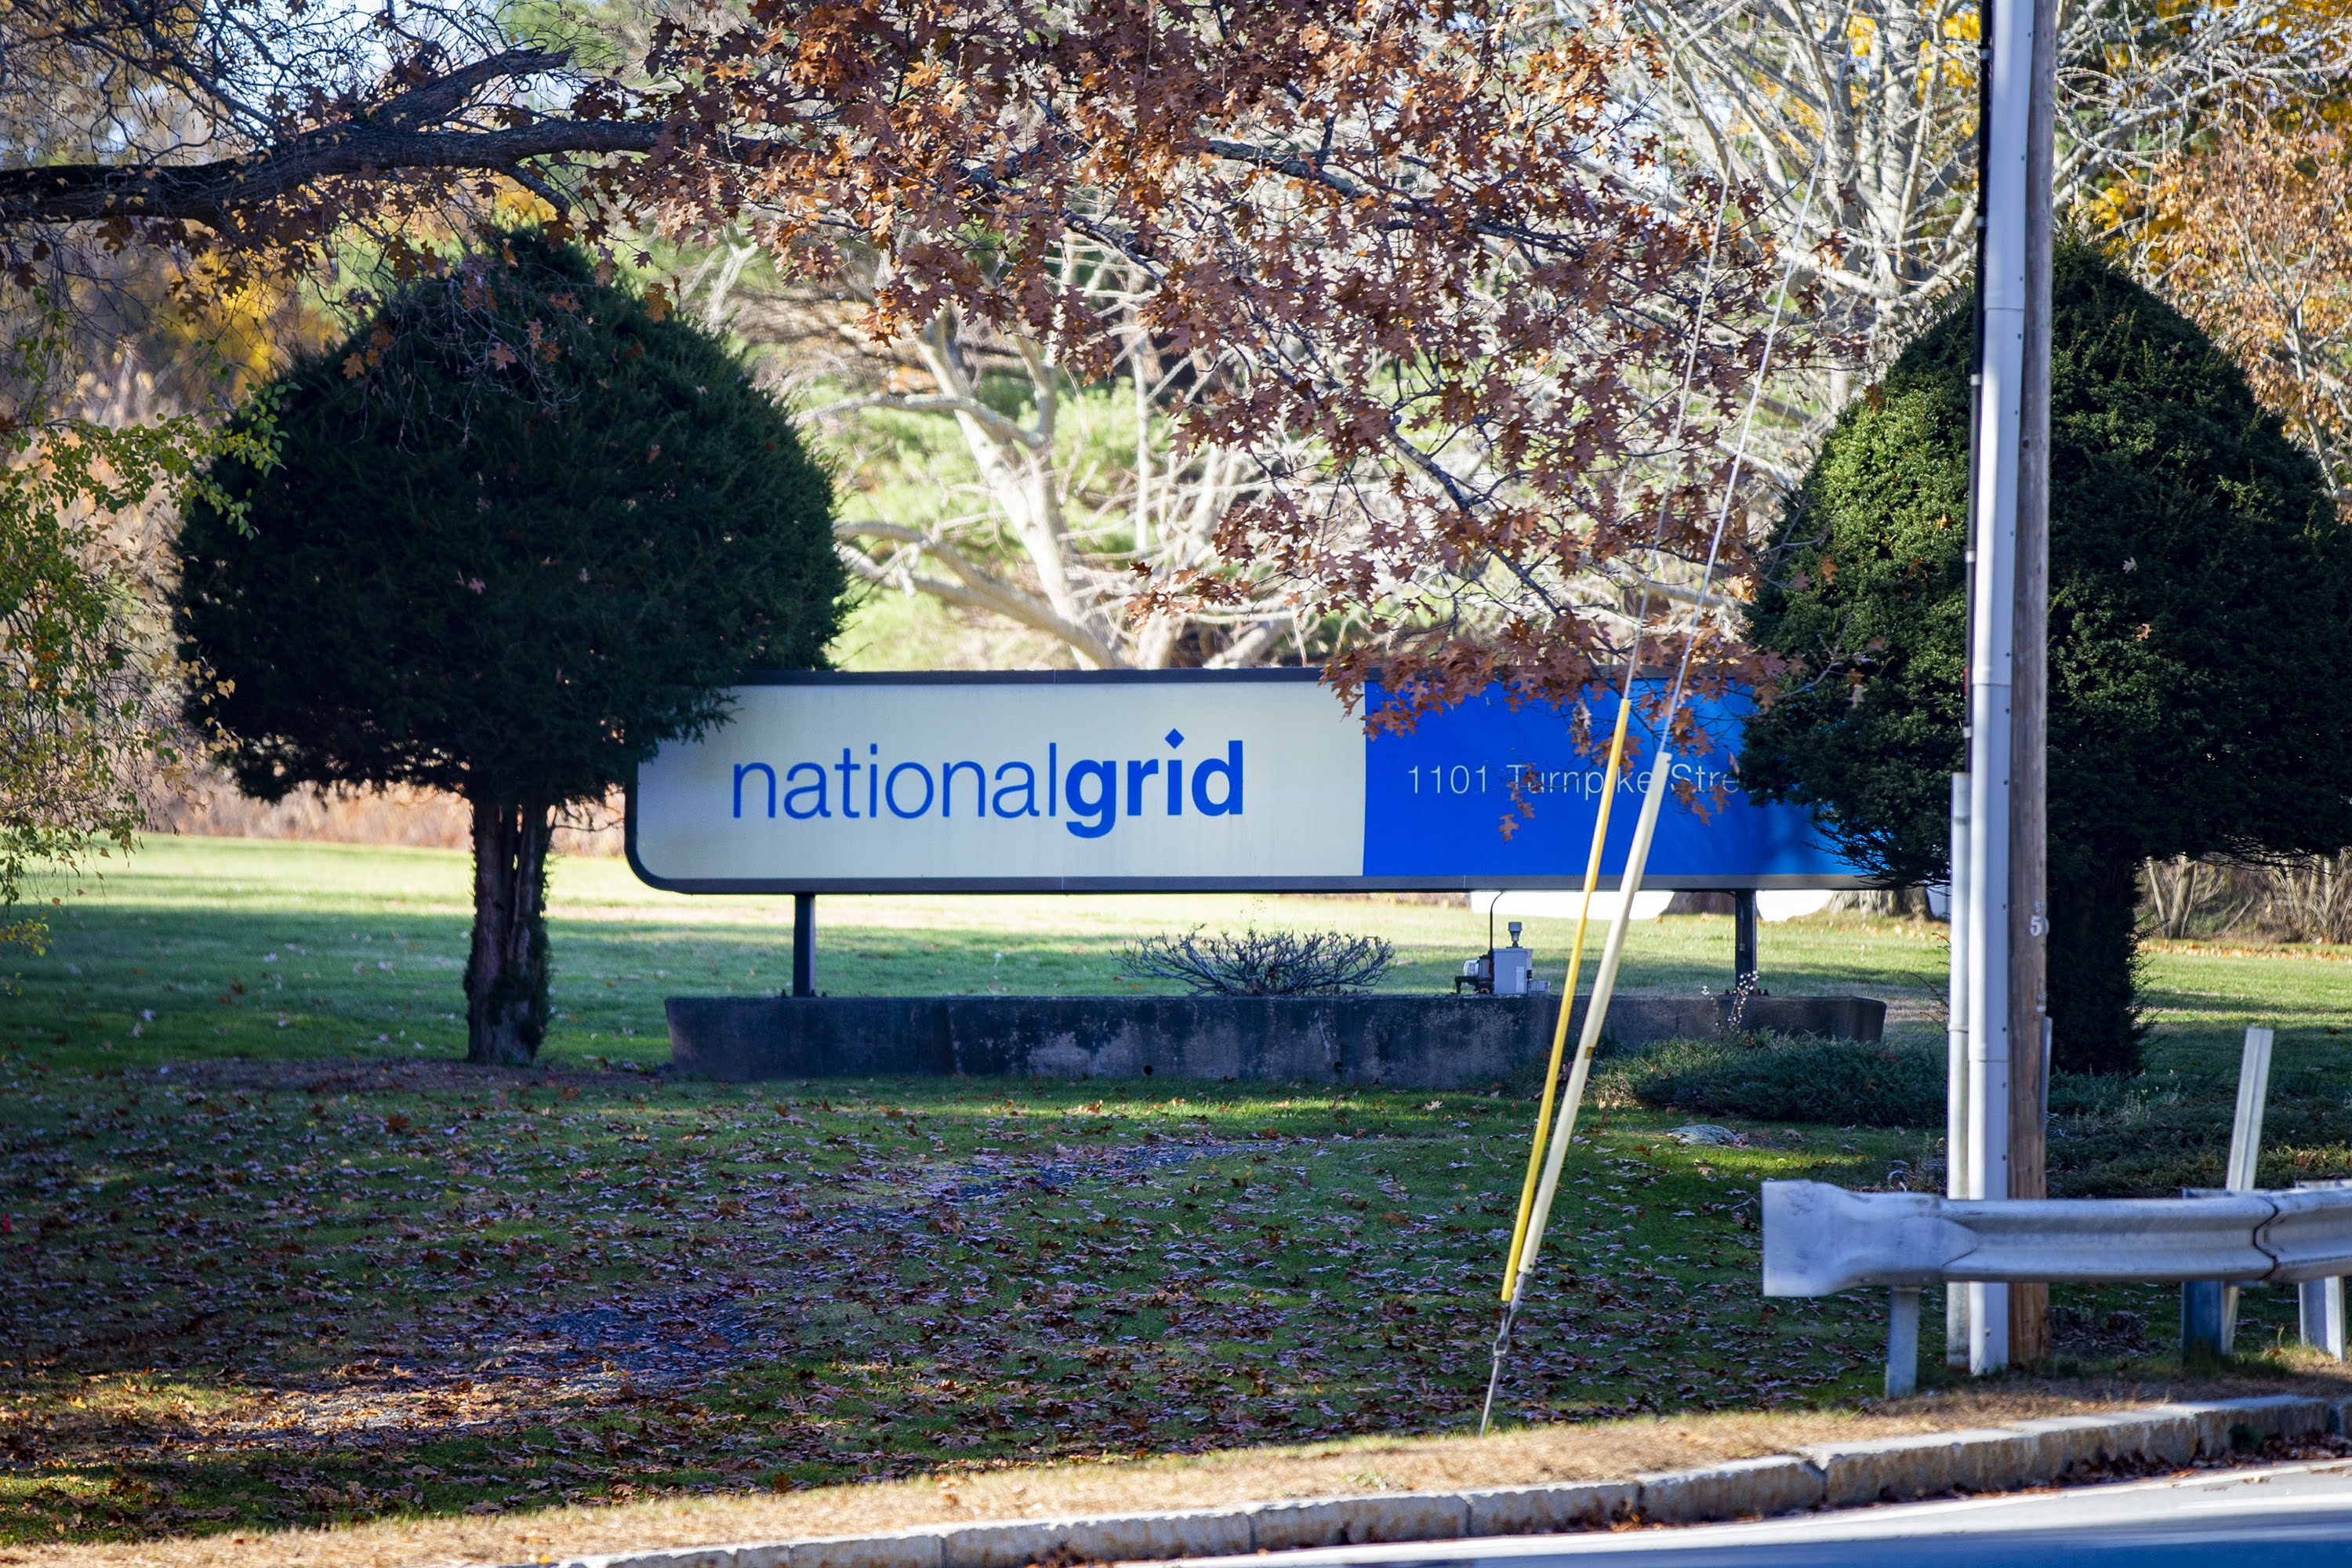 An audit of National Grid is being conducted by two former employees of the utility giant, an arrangement the attorney general said was a conflict of interest. (Jesse Costa/WBUR)